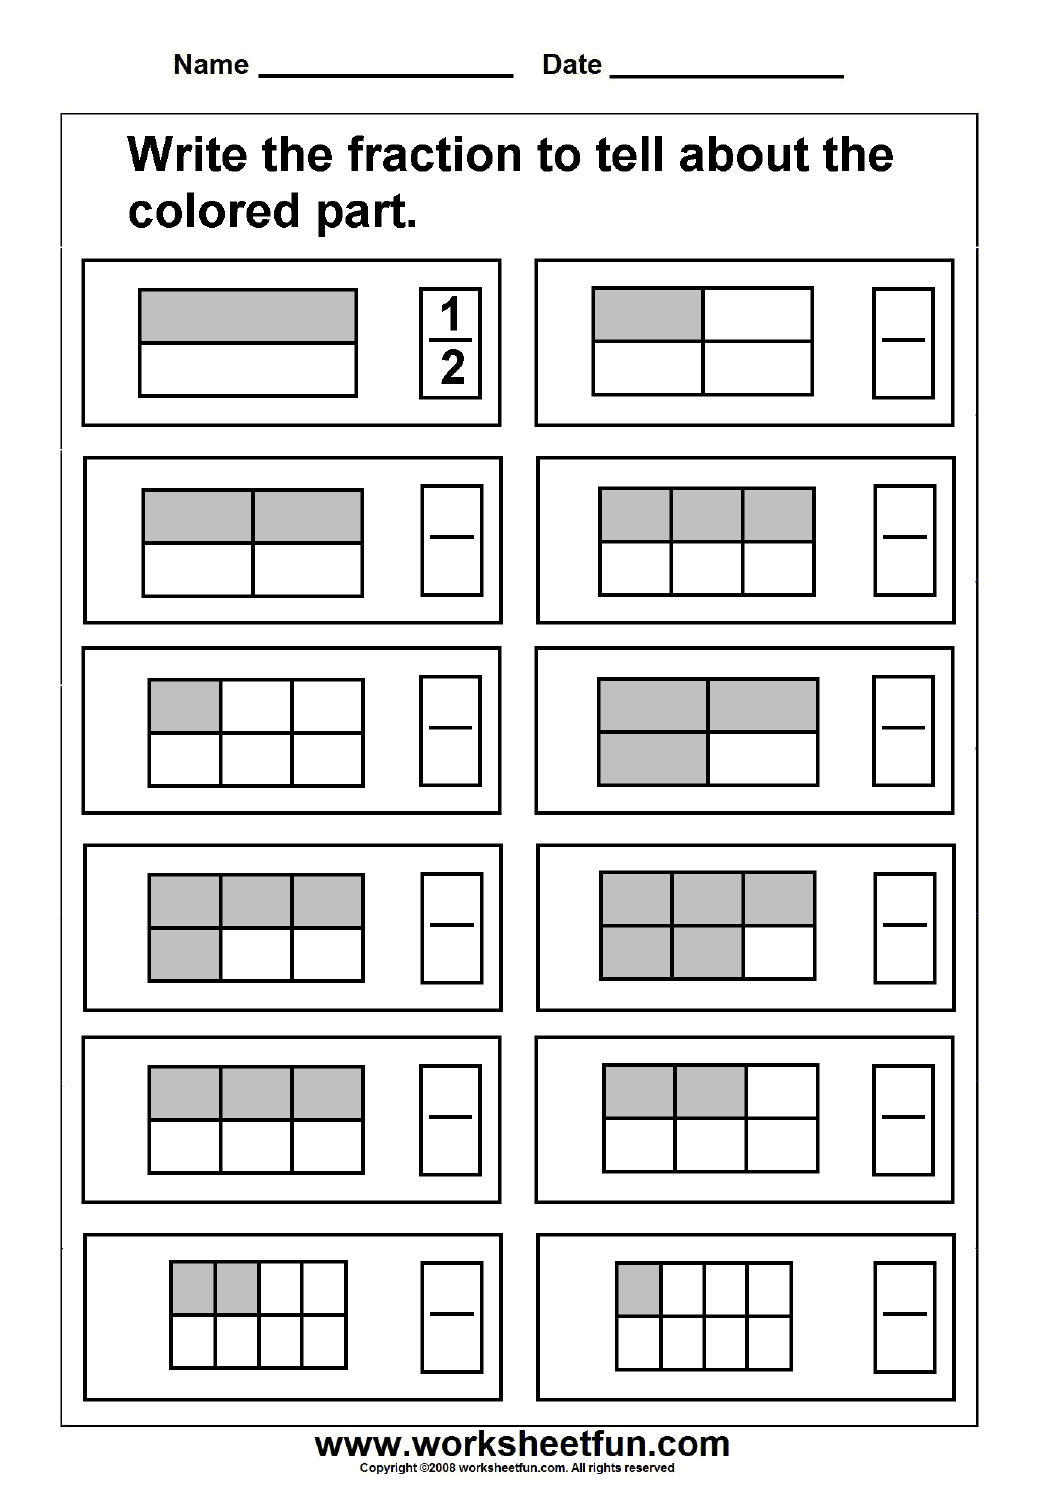 Fraction Model FREE Printable Worksheets Worksheetfun – Fractions of Shapes Worksheet